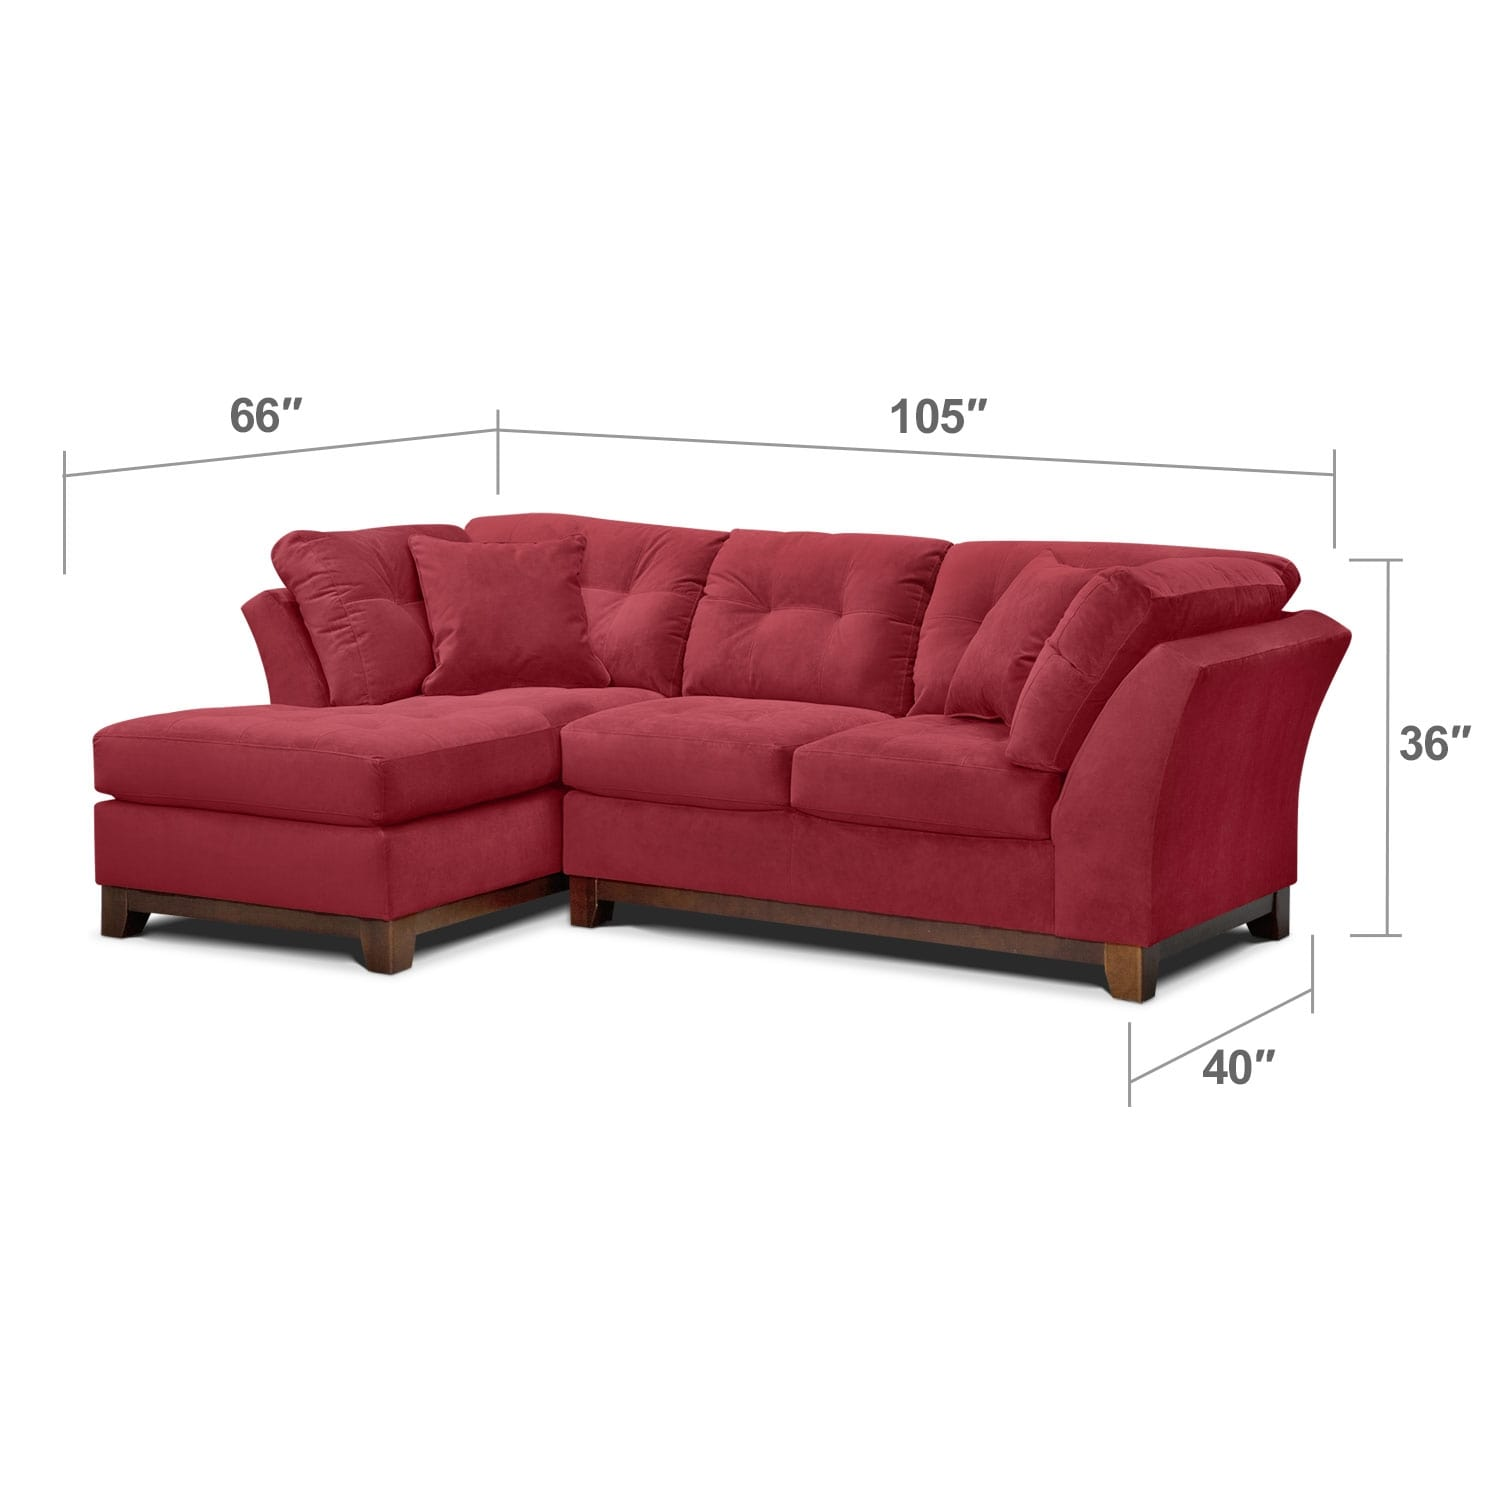 Living Room Furniture - Brookside II Poppy 2 Pc. Sectional (Alternate)